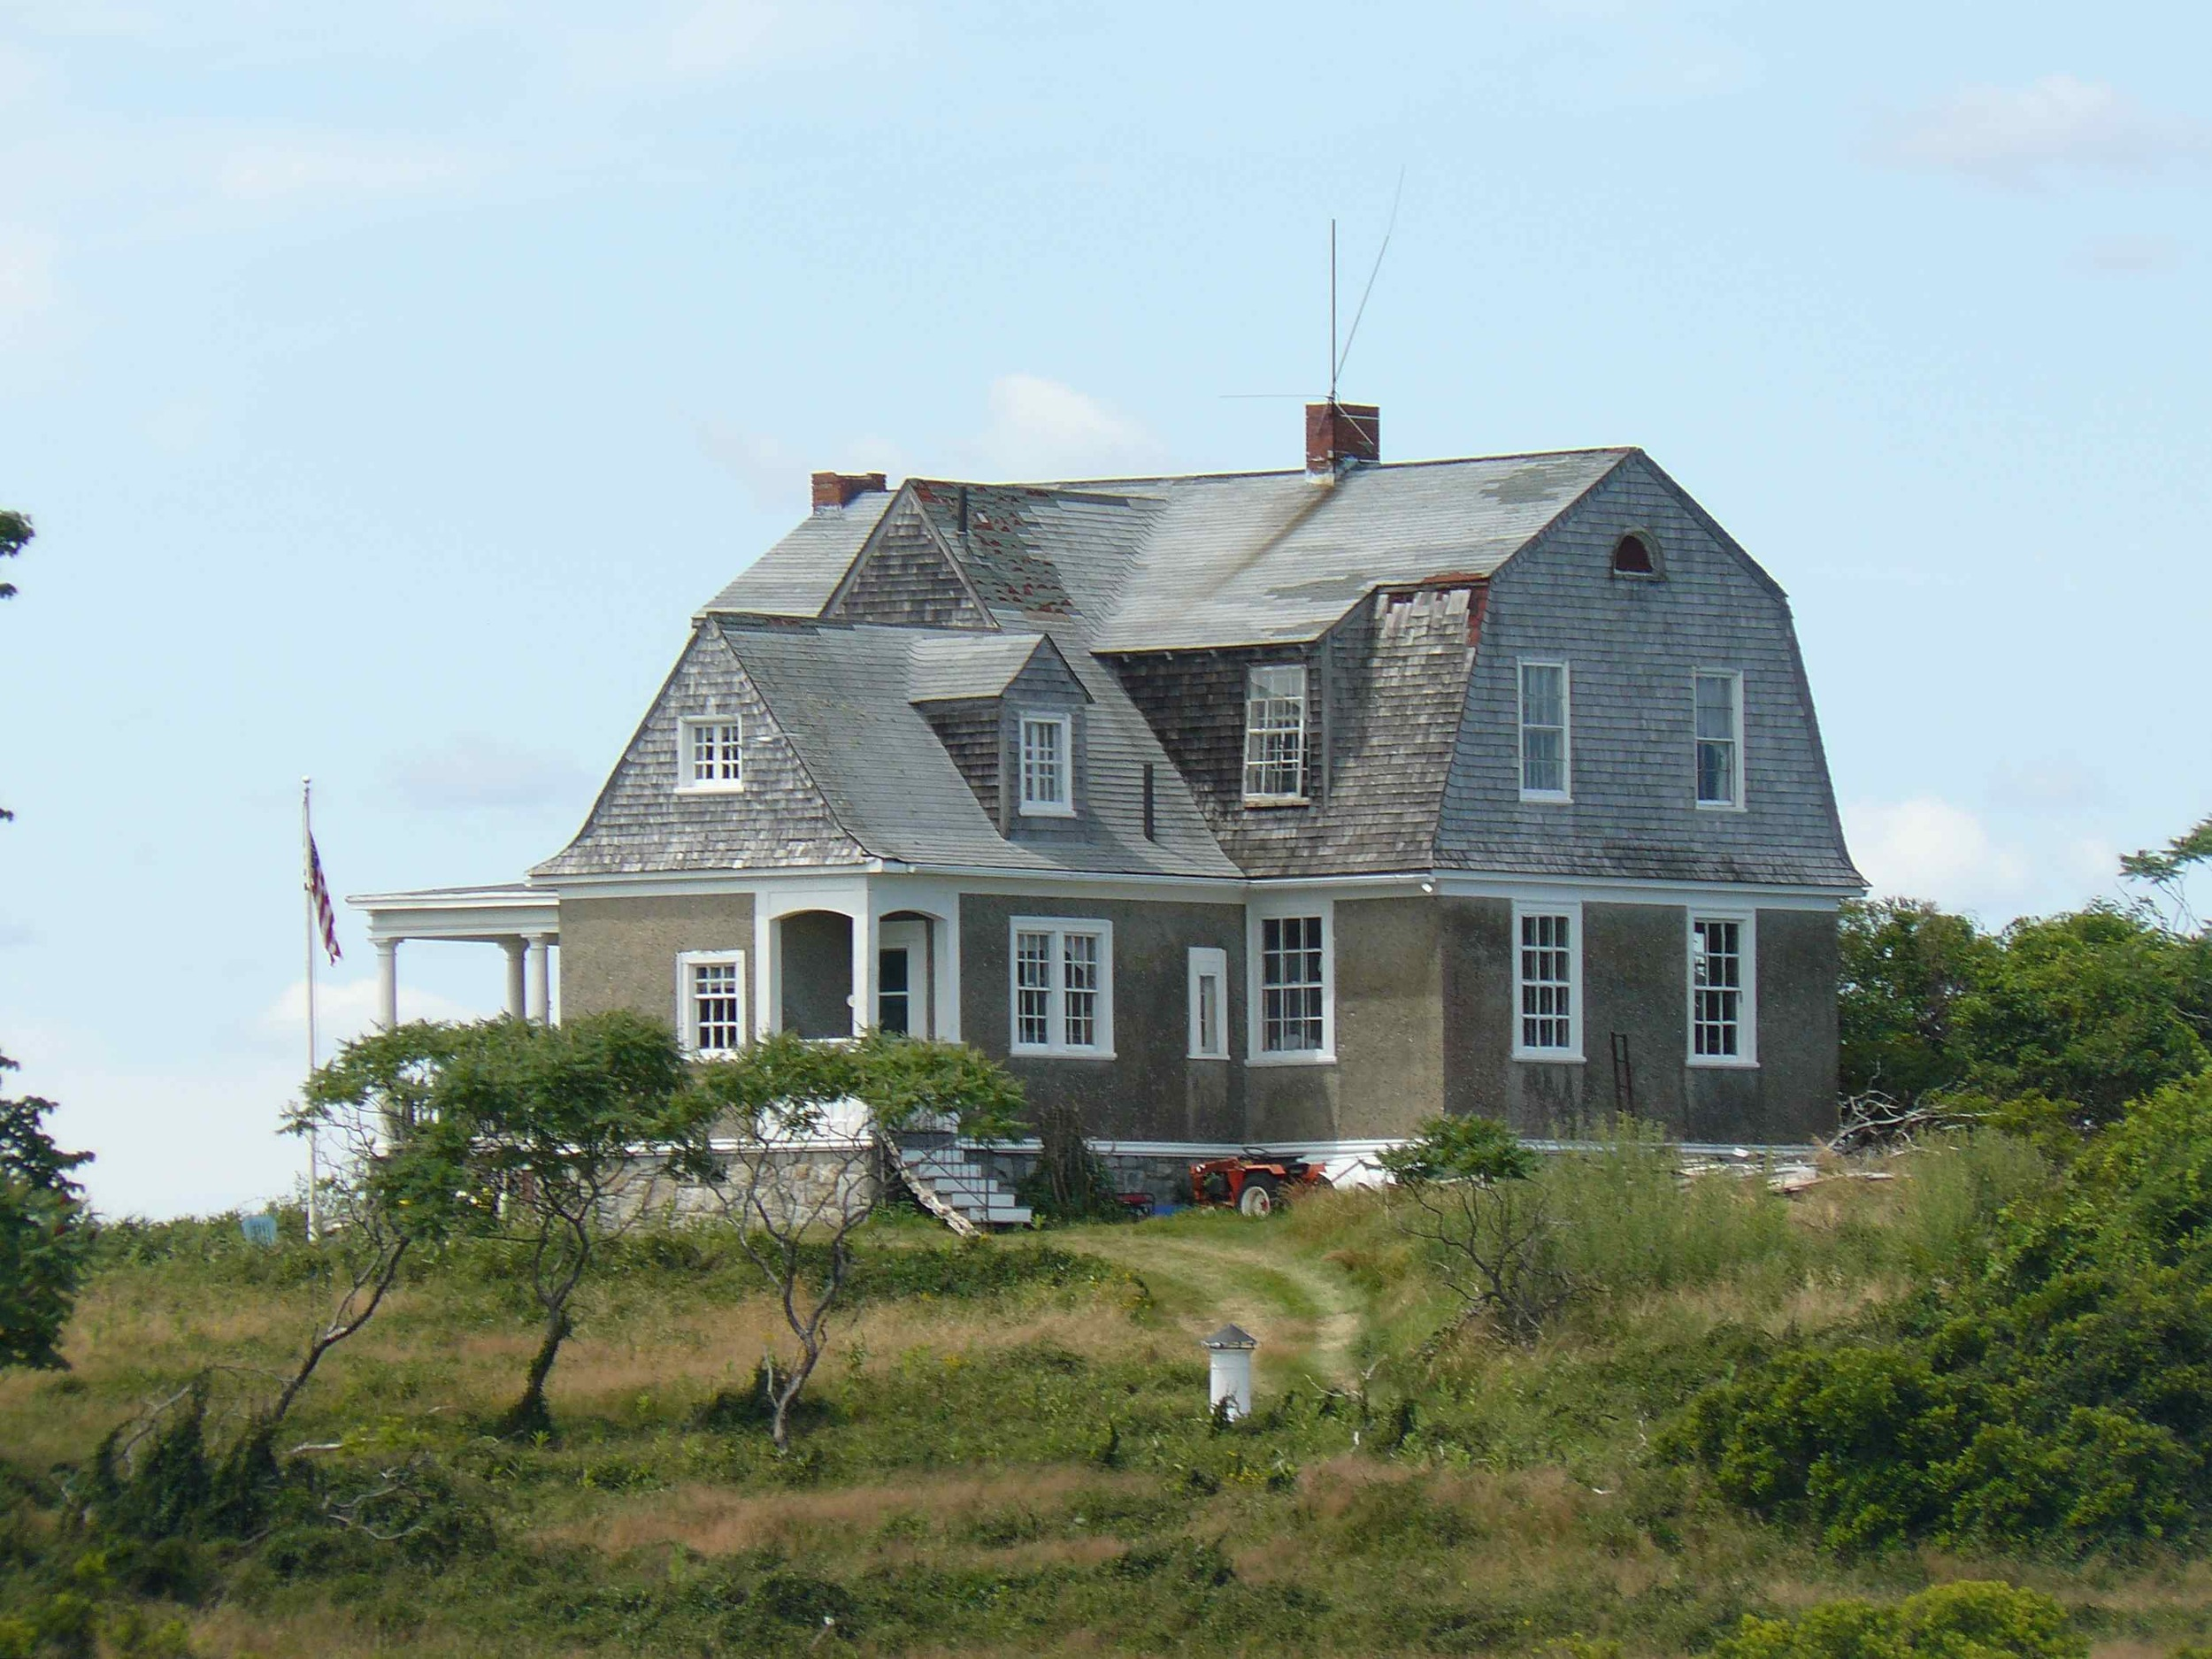 House_Island_July_2012_84_Surgeon_General_House.JPG